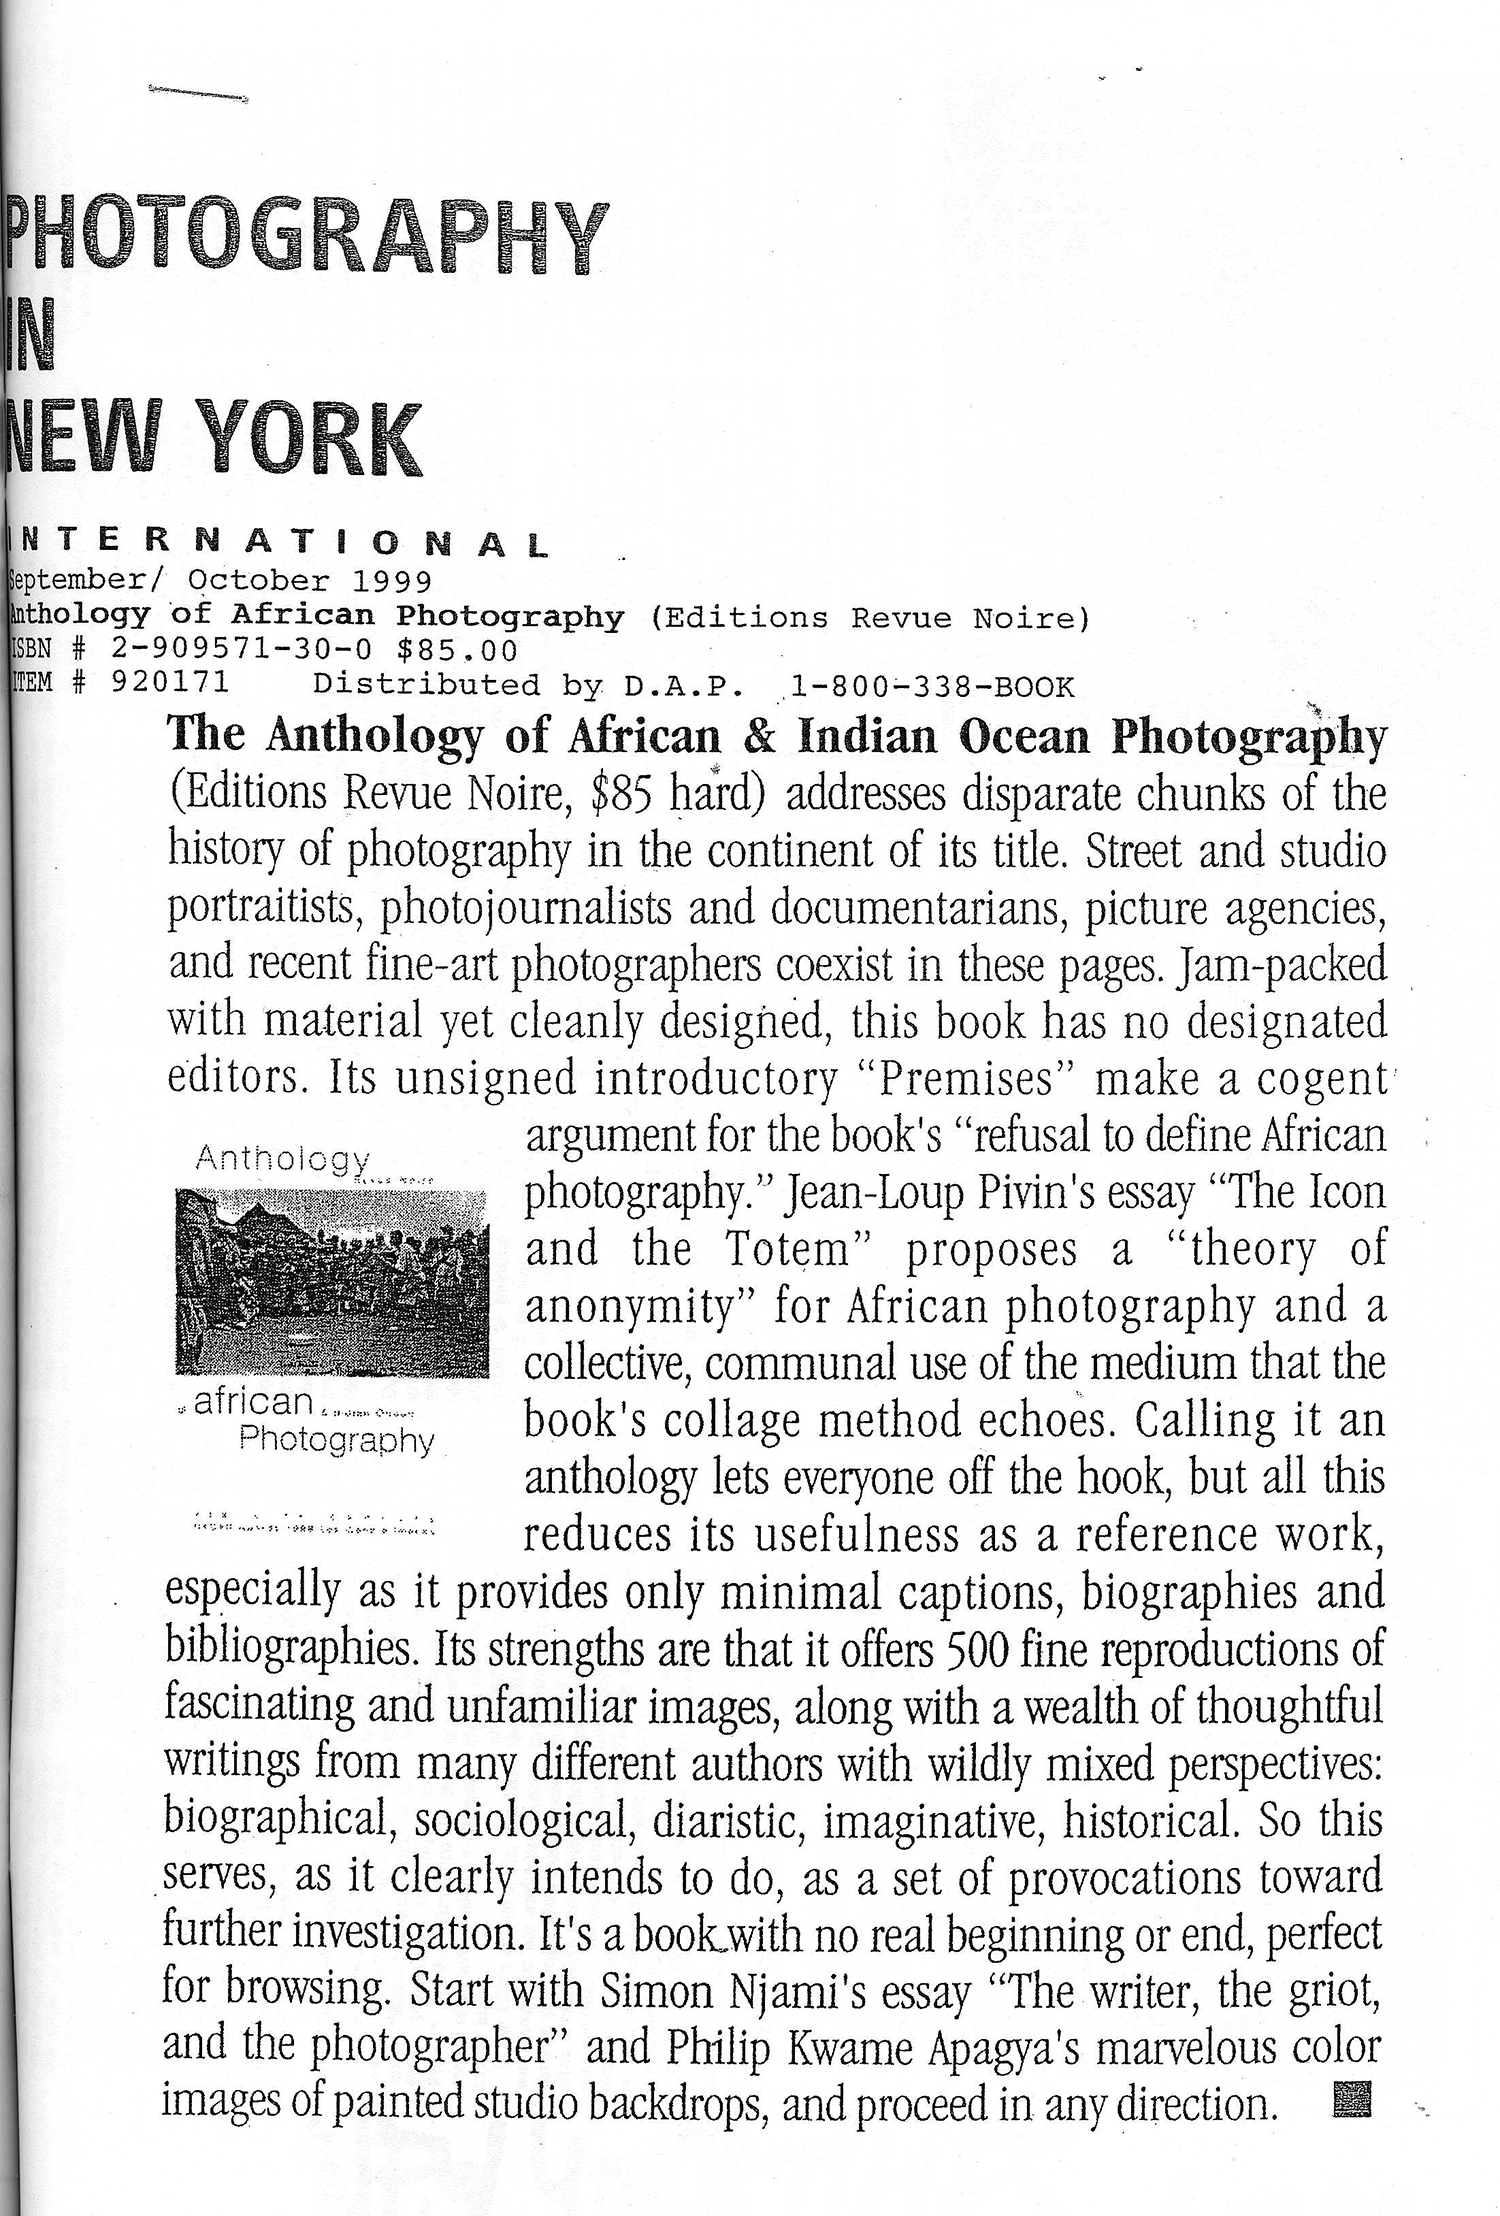 REVUE NOIRE revue de presse: Photography in New York sept 1999. Anthology of African and Indian Ocean Photography, Revue Noire et expo Afrique par Elle-même